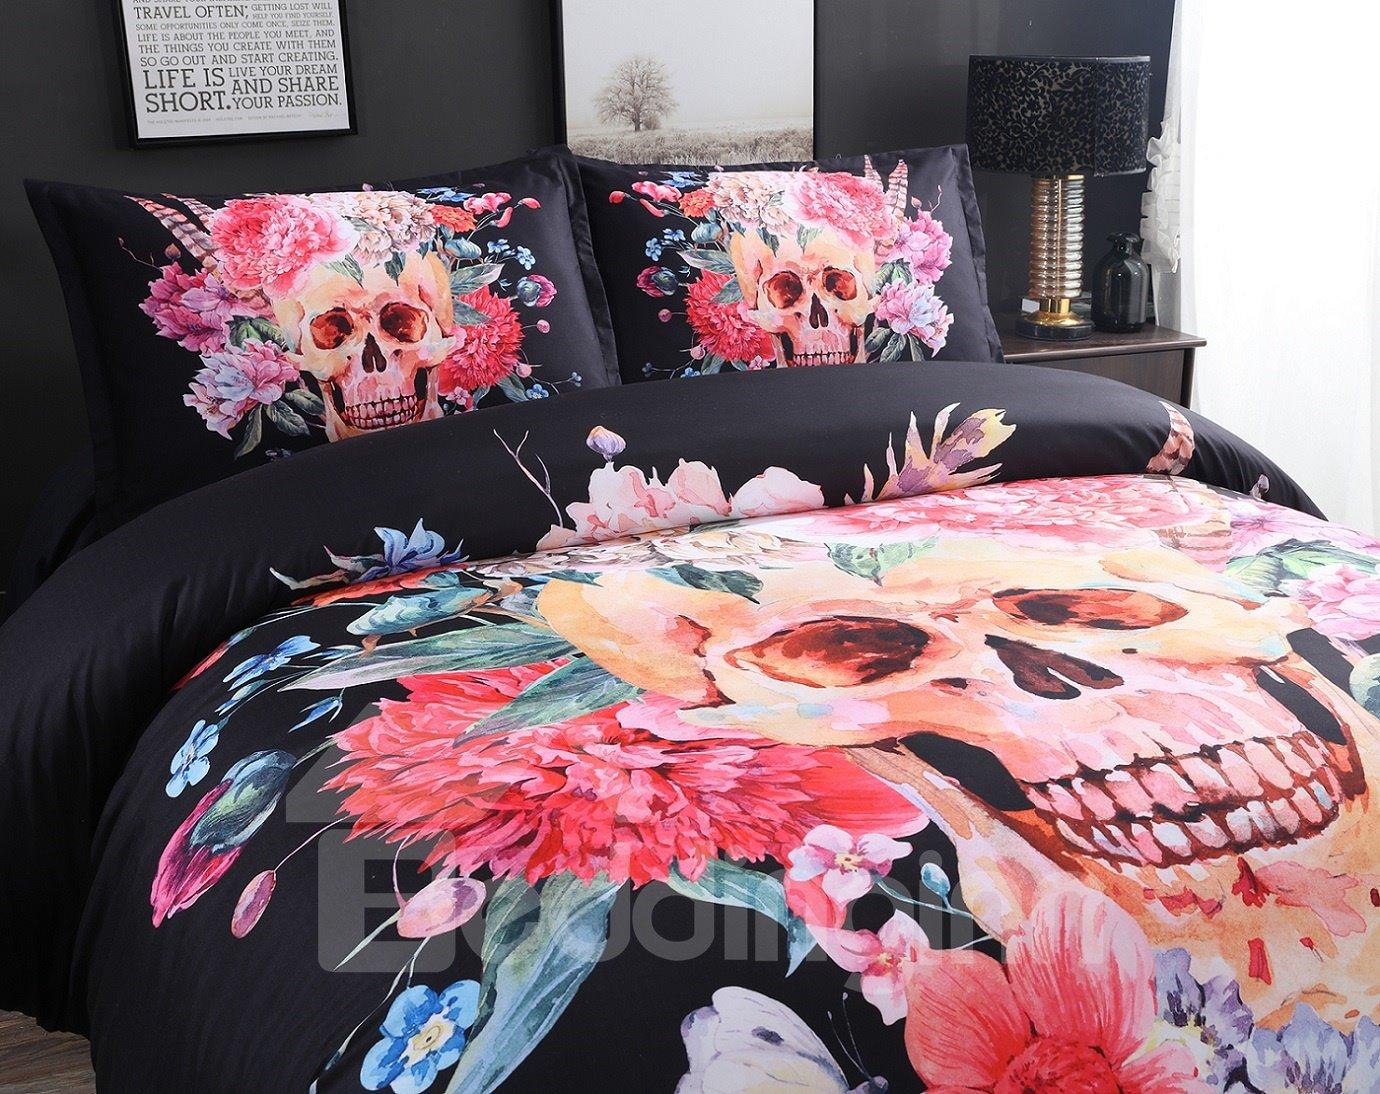 3D Skull with Blooming Flowers Printed Cotton 4-Piece Black Bedding Sets/Duvet Covers